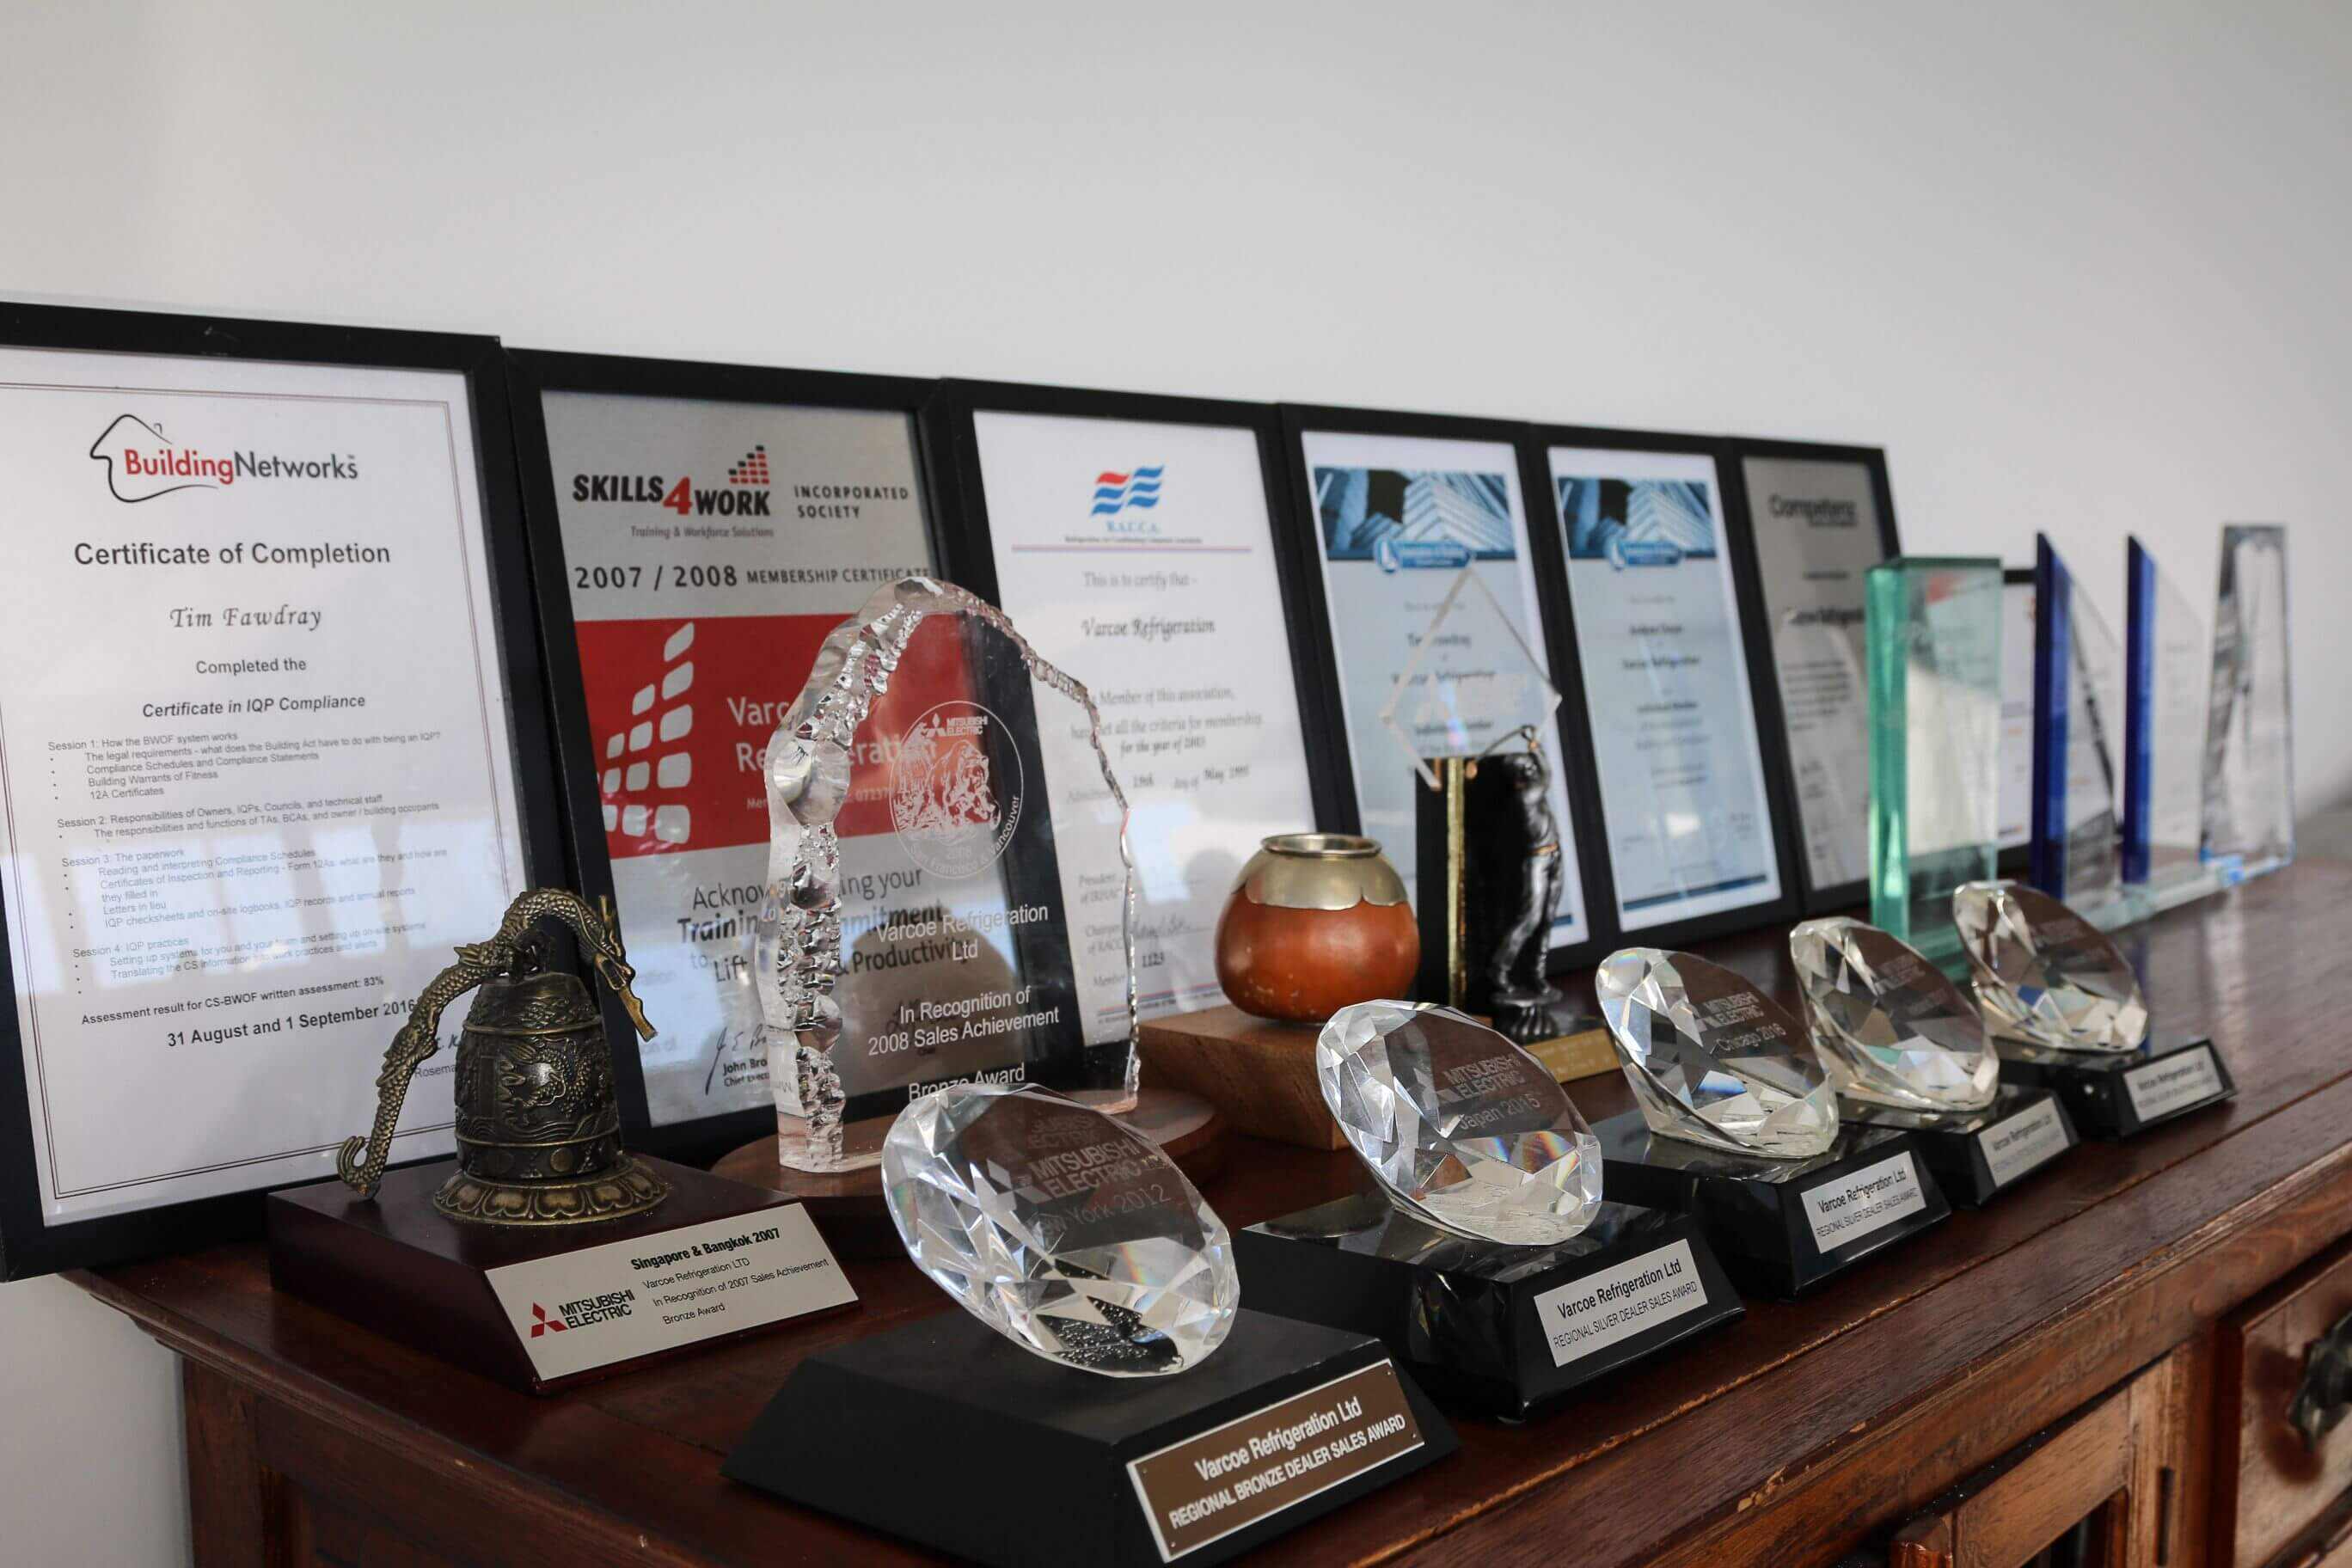 A display of all the awards Varcoe has won